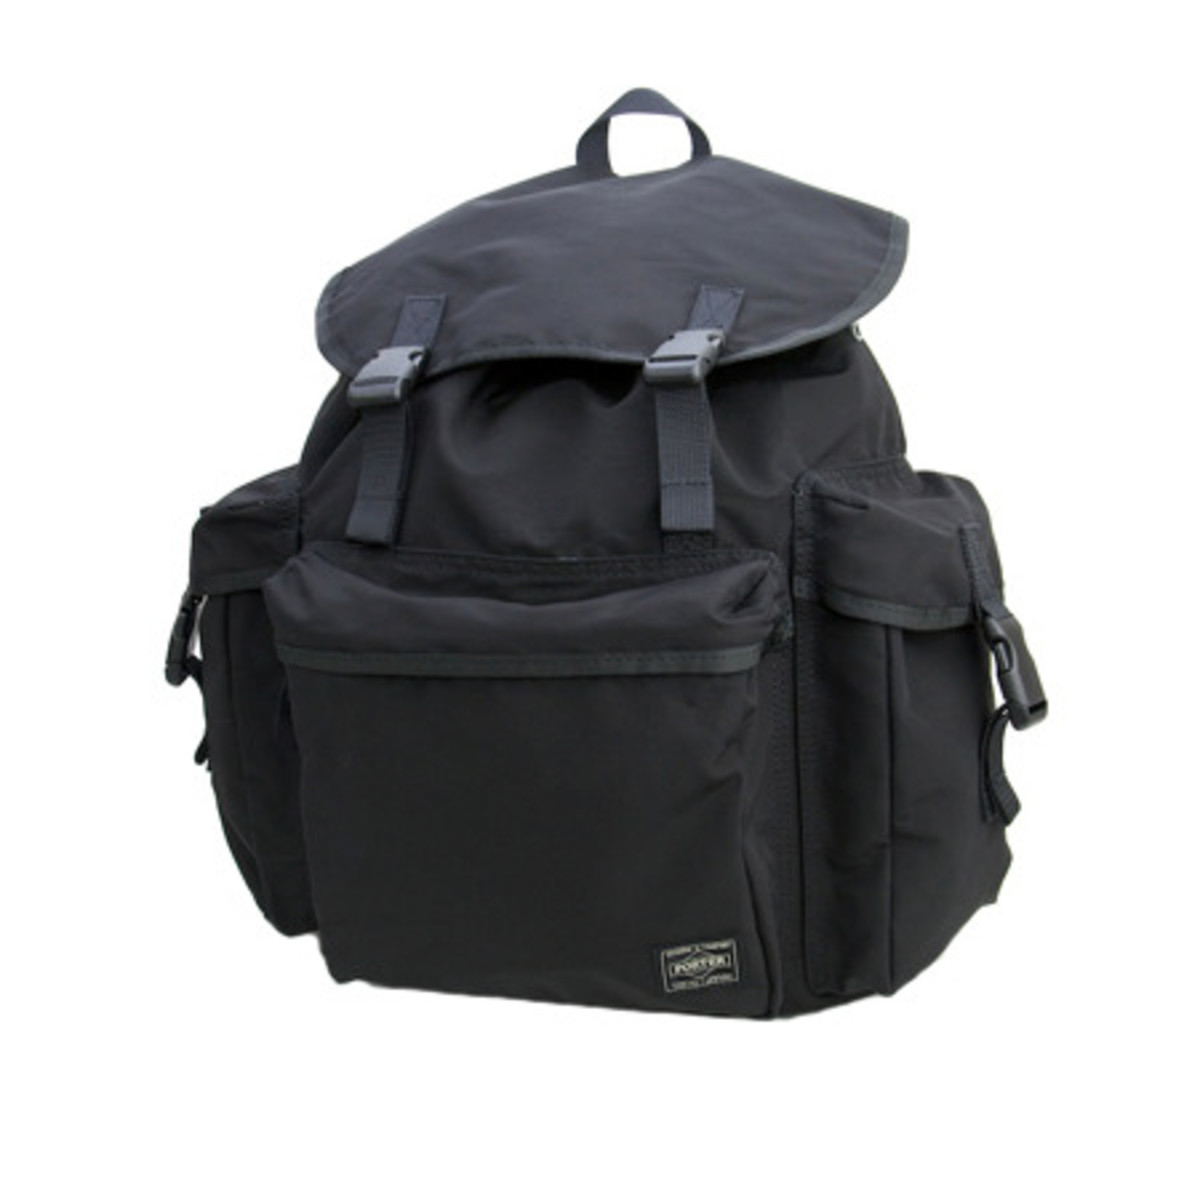 ruck-sack-black